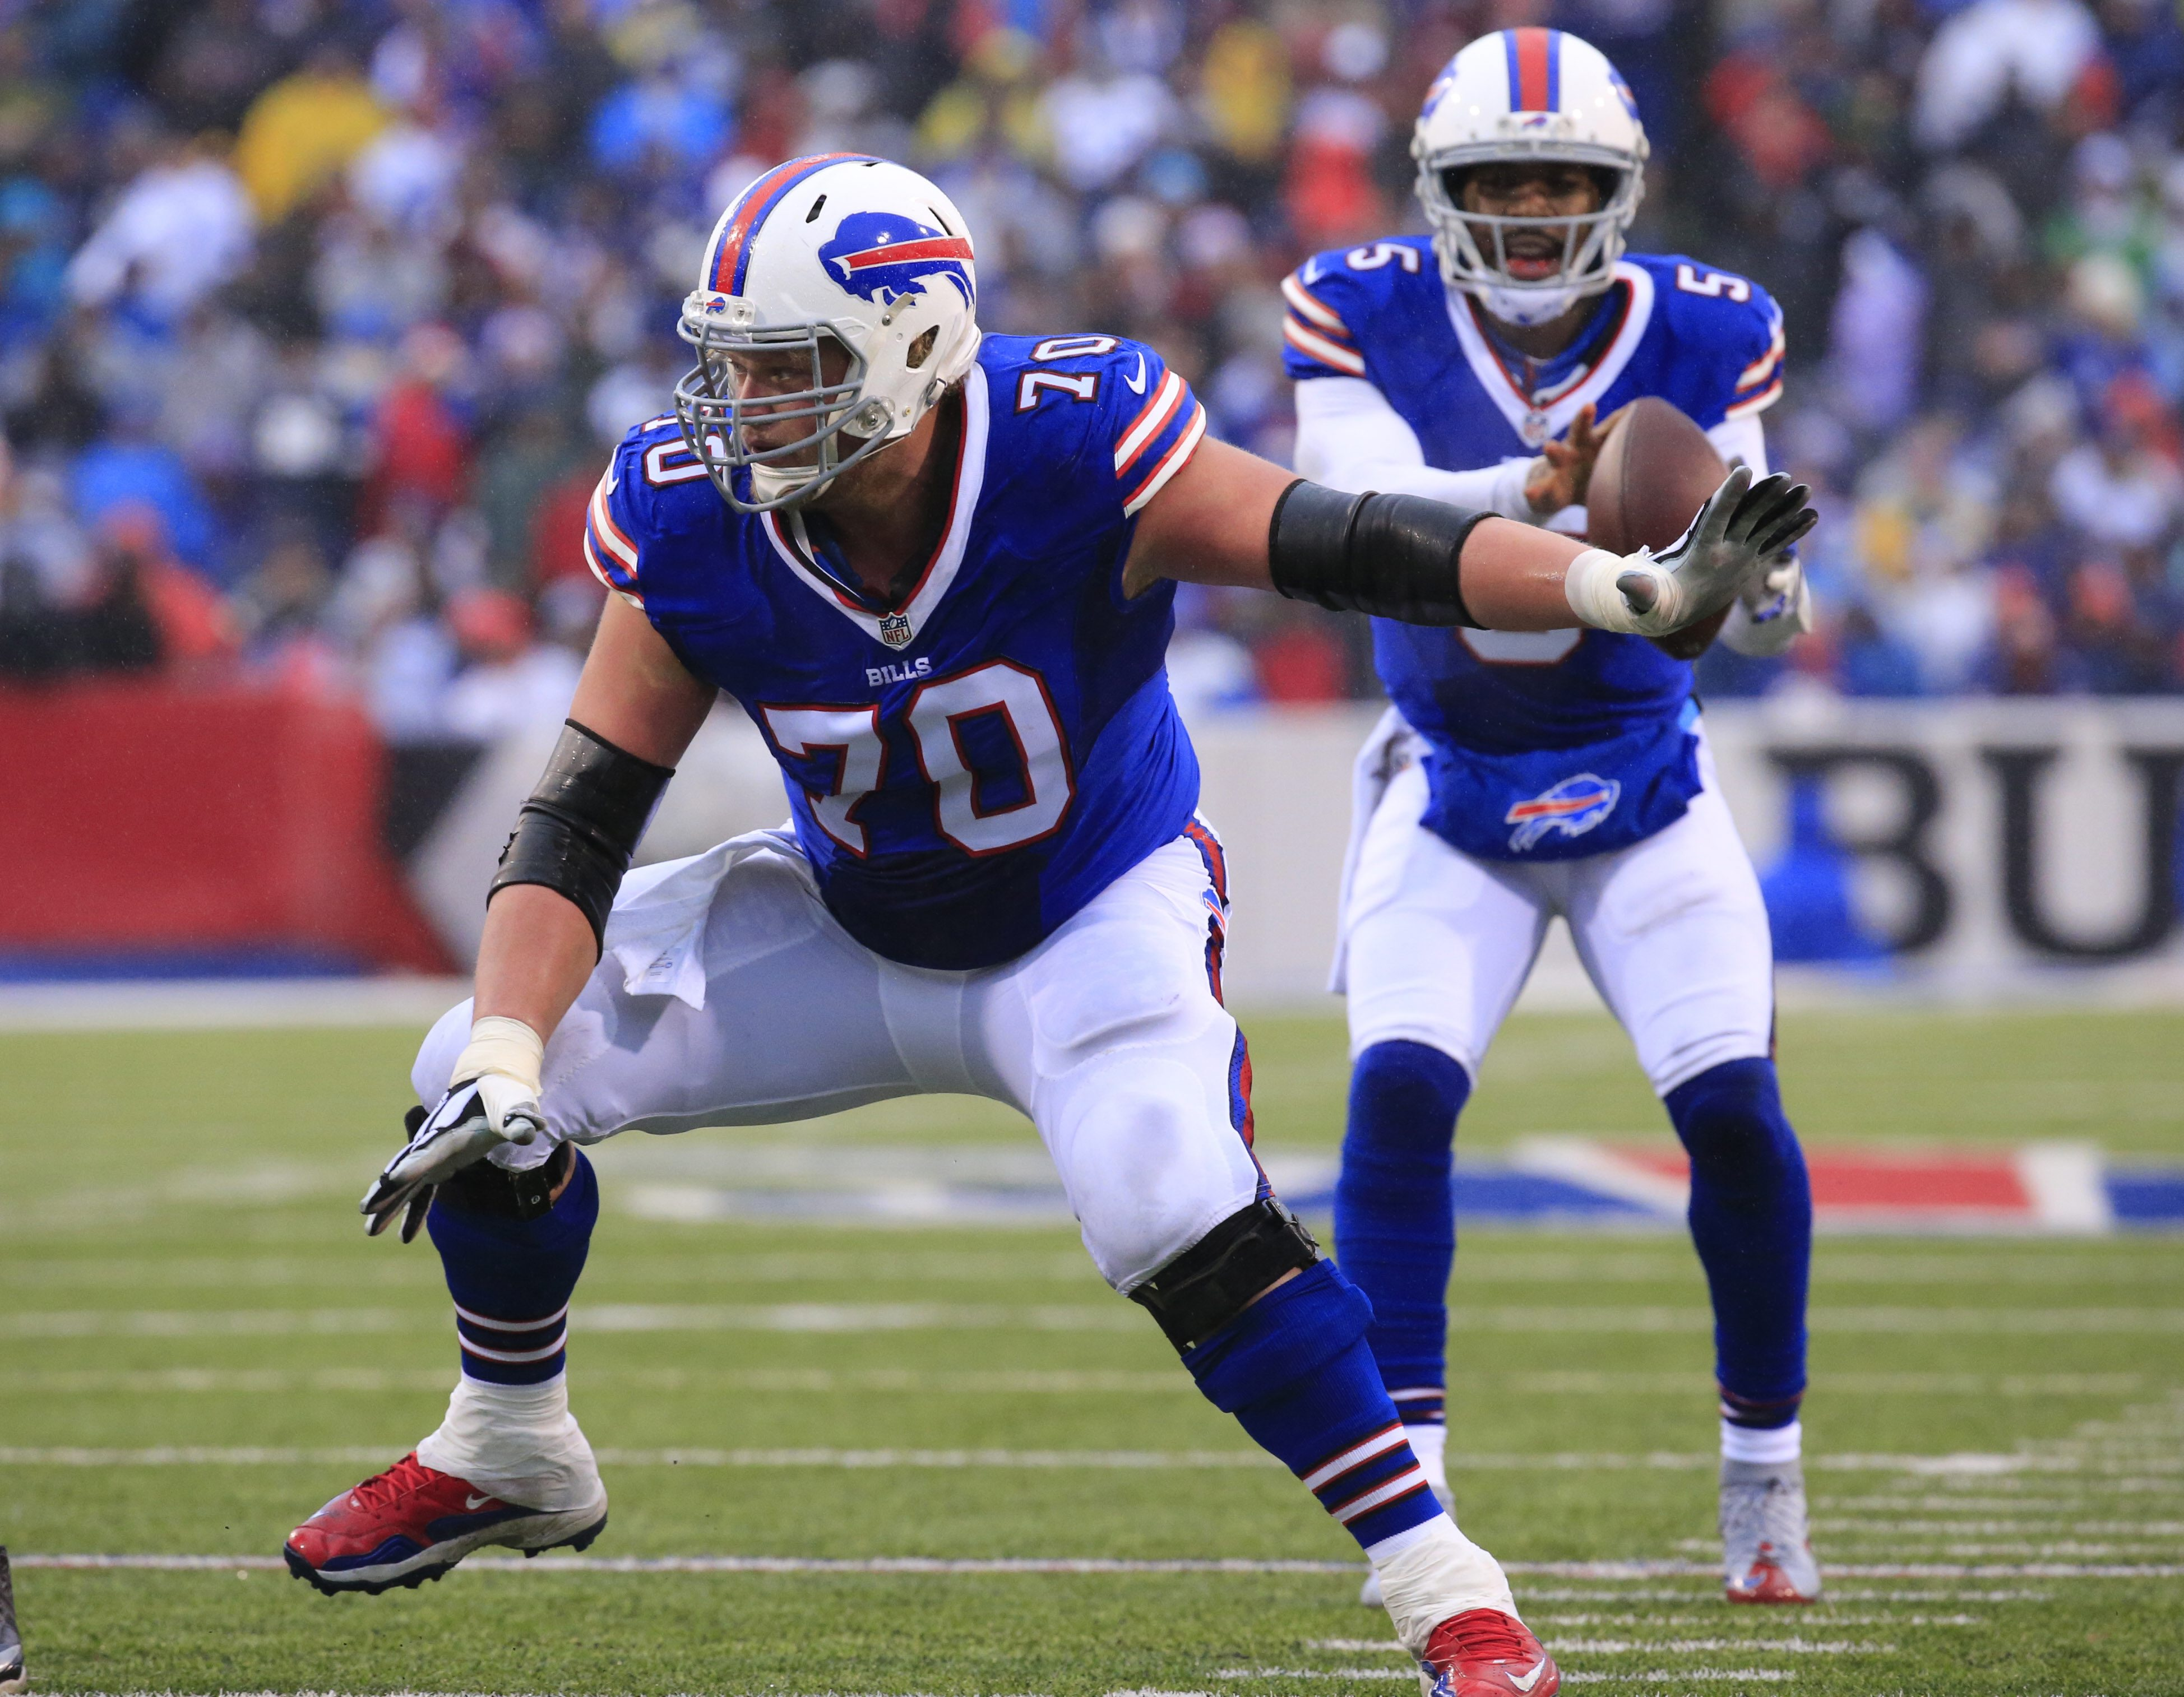 Buffalo Bills center Eric Wood and quarterback Tyrod Taylor are headed to the Pro Bowl. (Harry Scull Jr./Buffalo News)